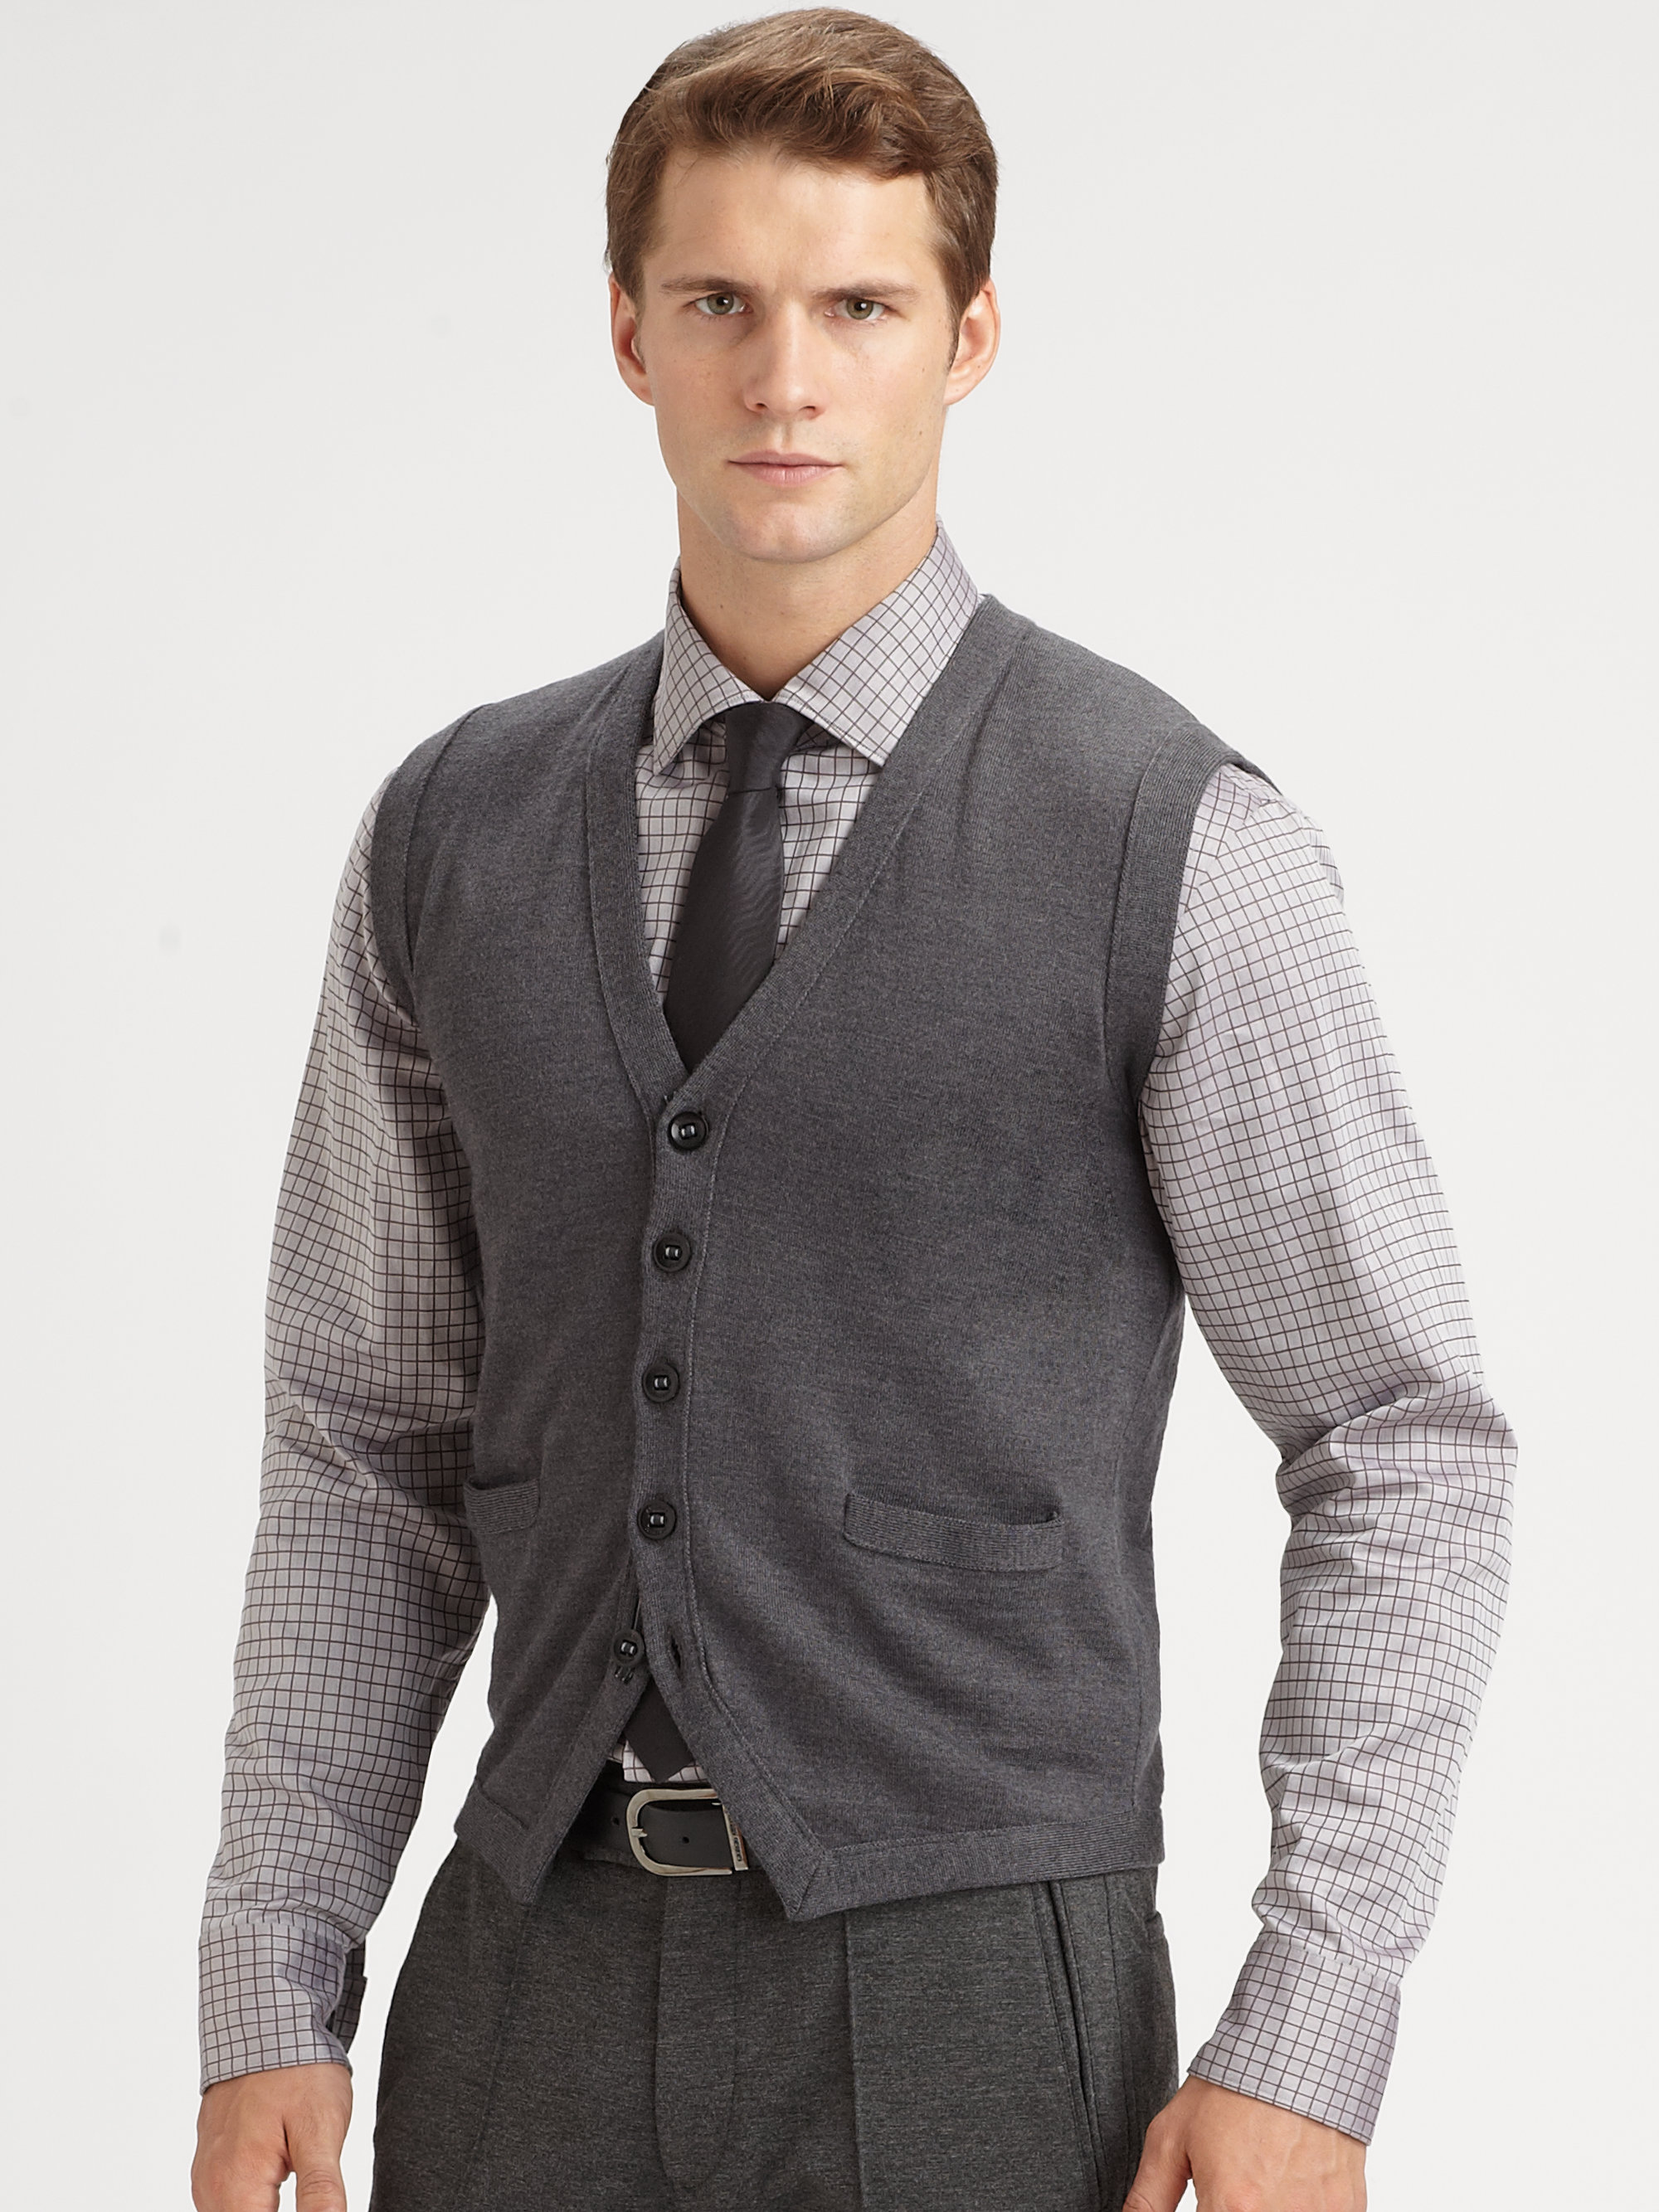 Armani Wool Sweater Vest in Gray for Men | Lyst